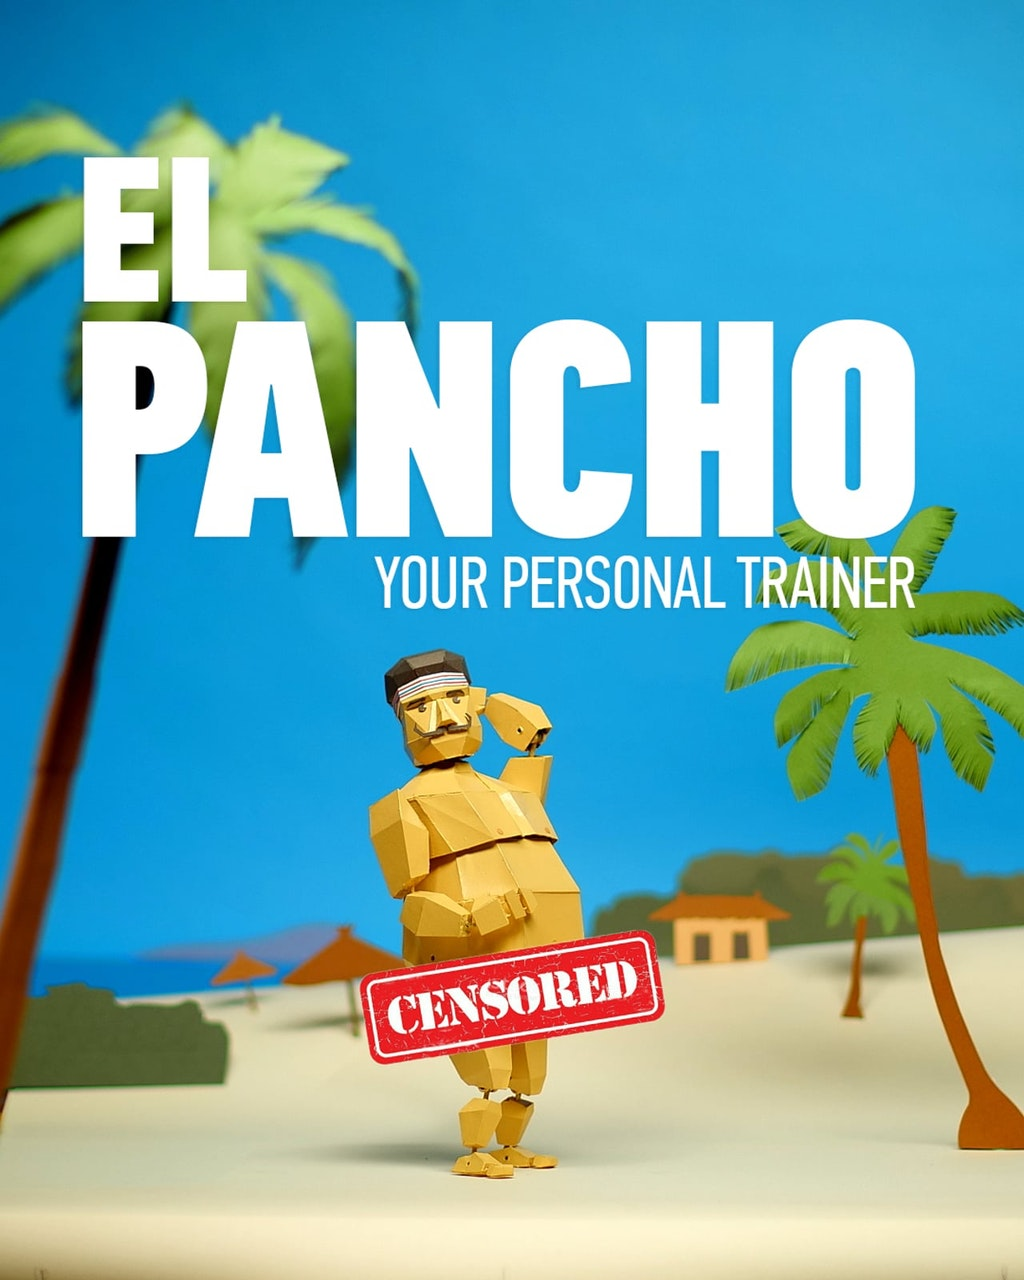 """""""El Pancho"""" - Your Personal Trainer"""